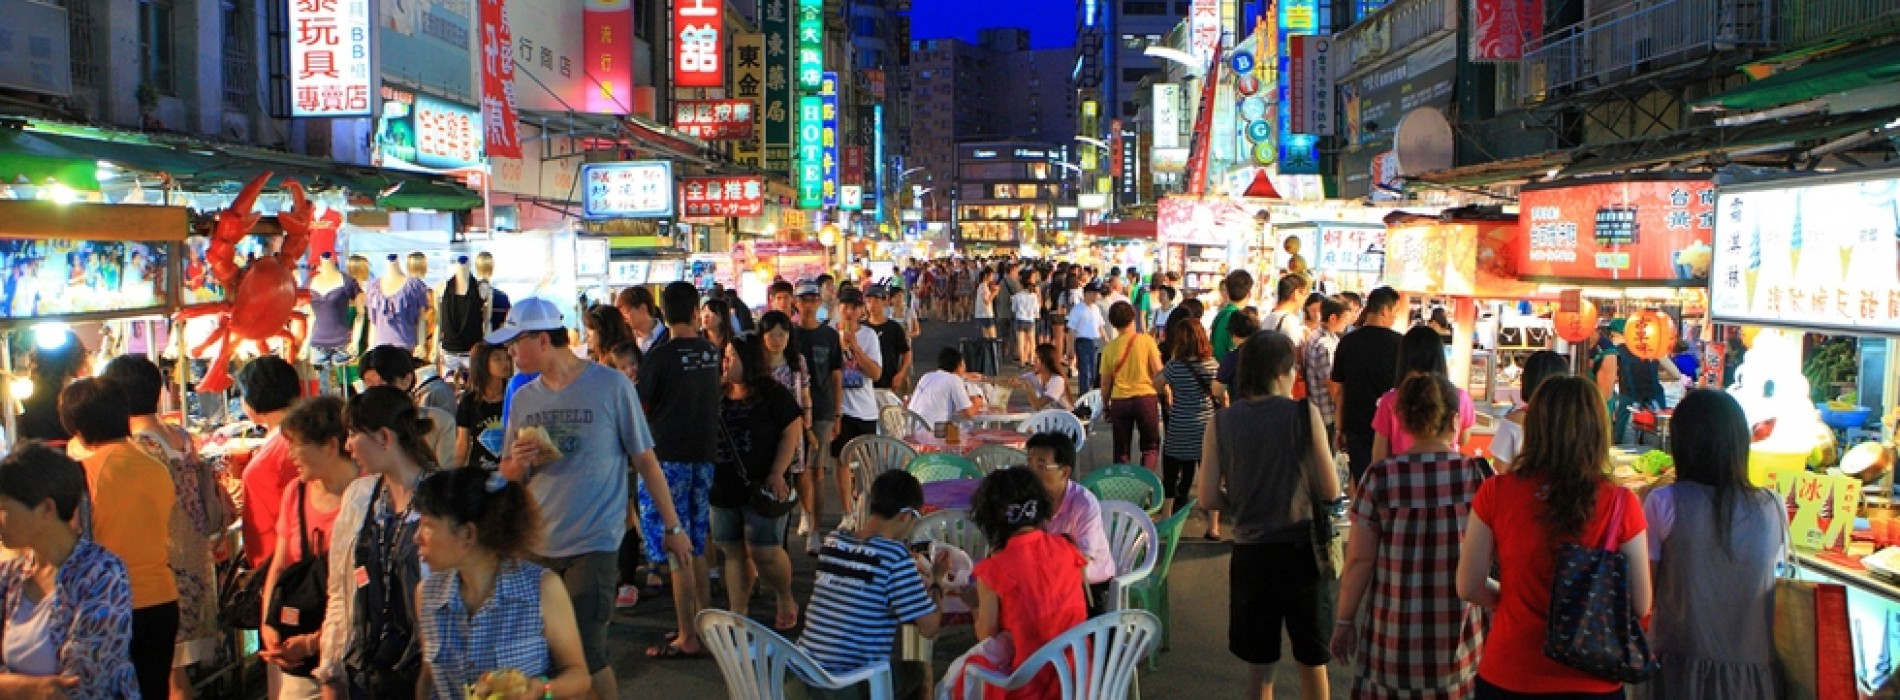 Lonely Planet places Kaohsiung, Taiwan as one of the 'Top 10 cities to visit in 2018!'